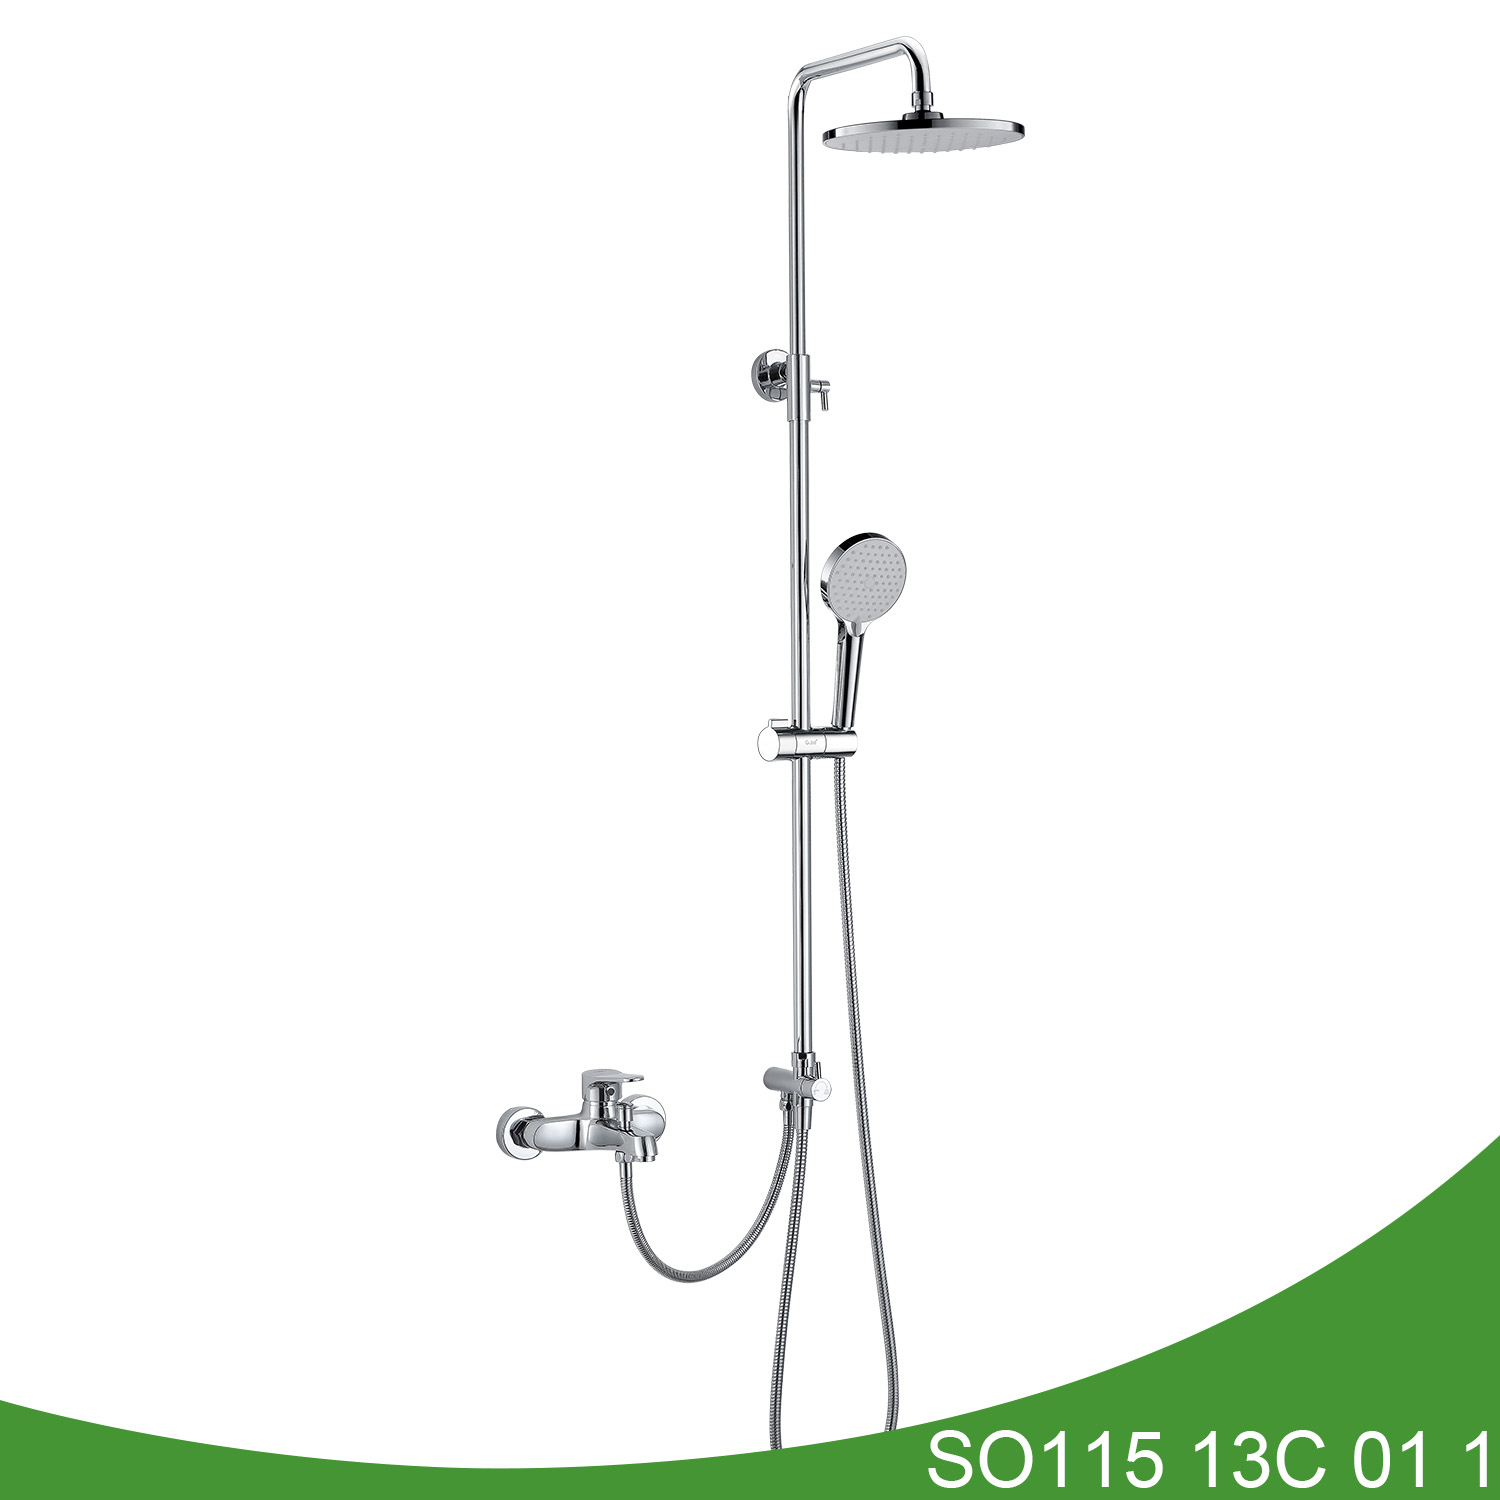 Exposed shower set SO115 13C 01 1